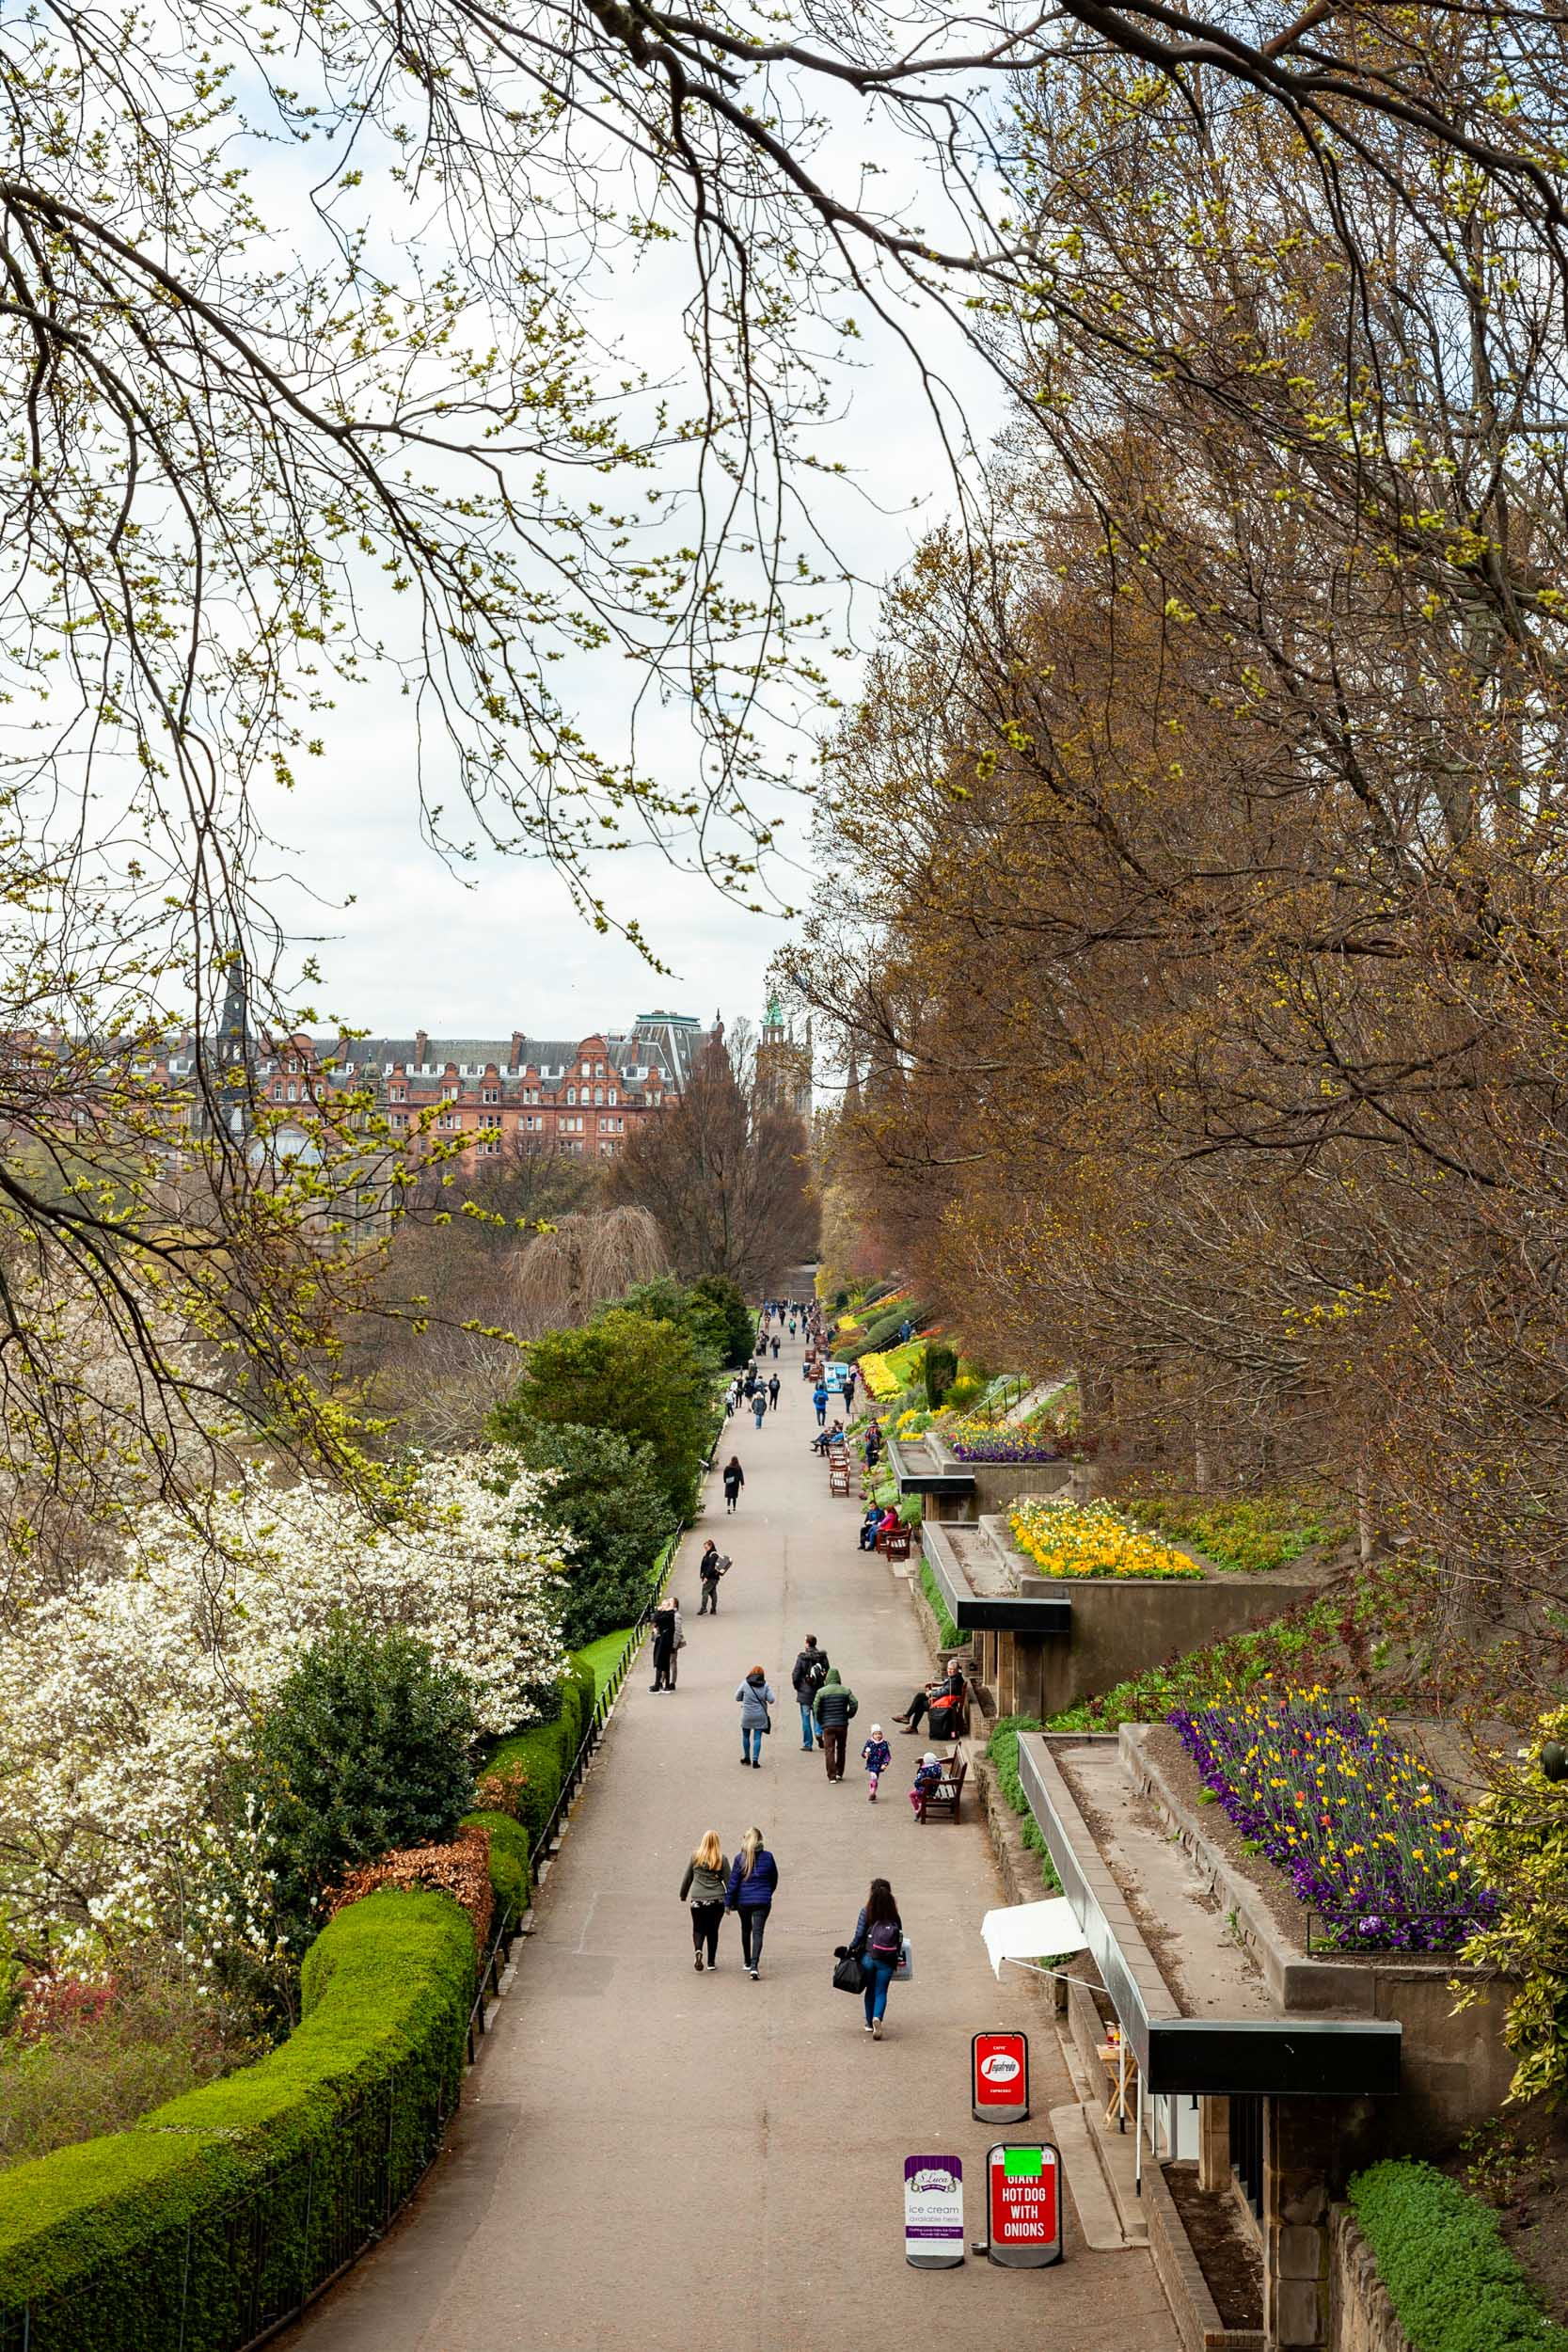 Spring has sprung in the Princes Street Gardens